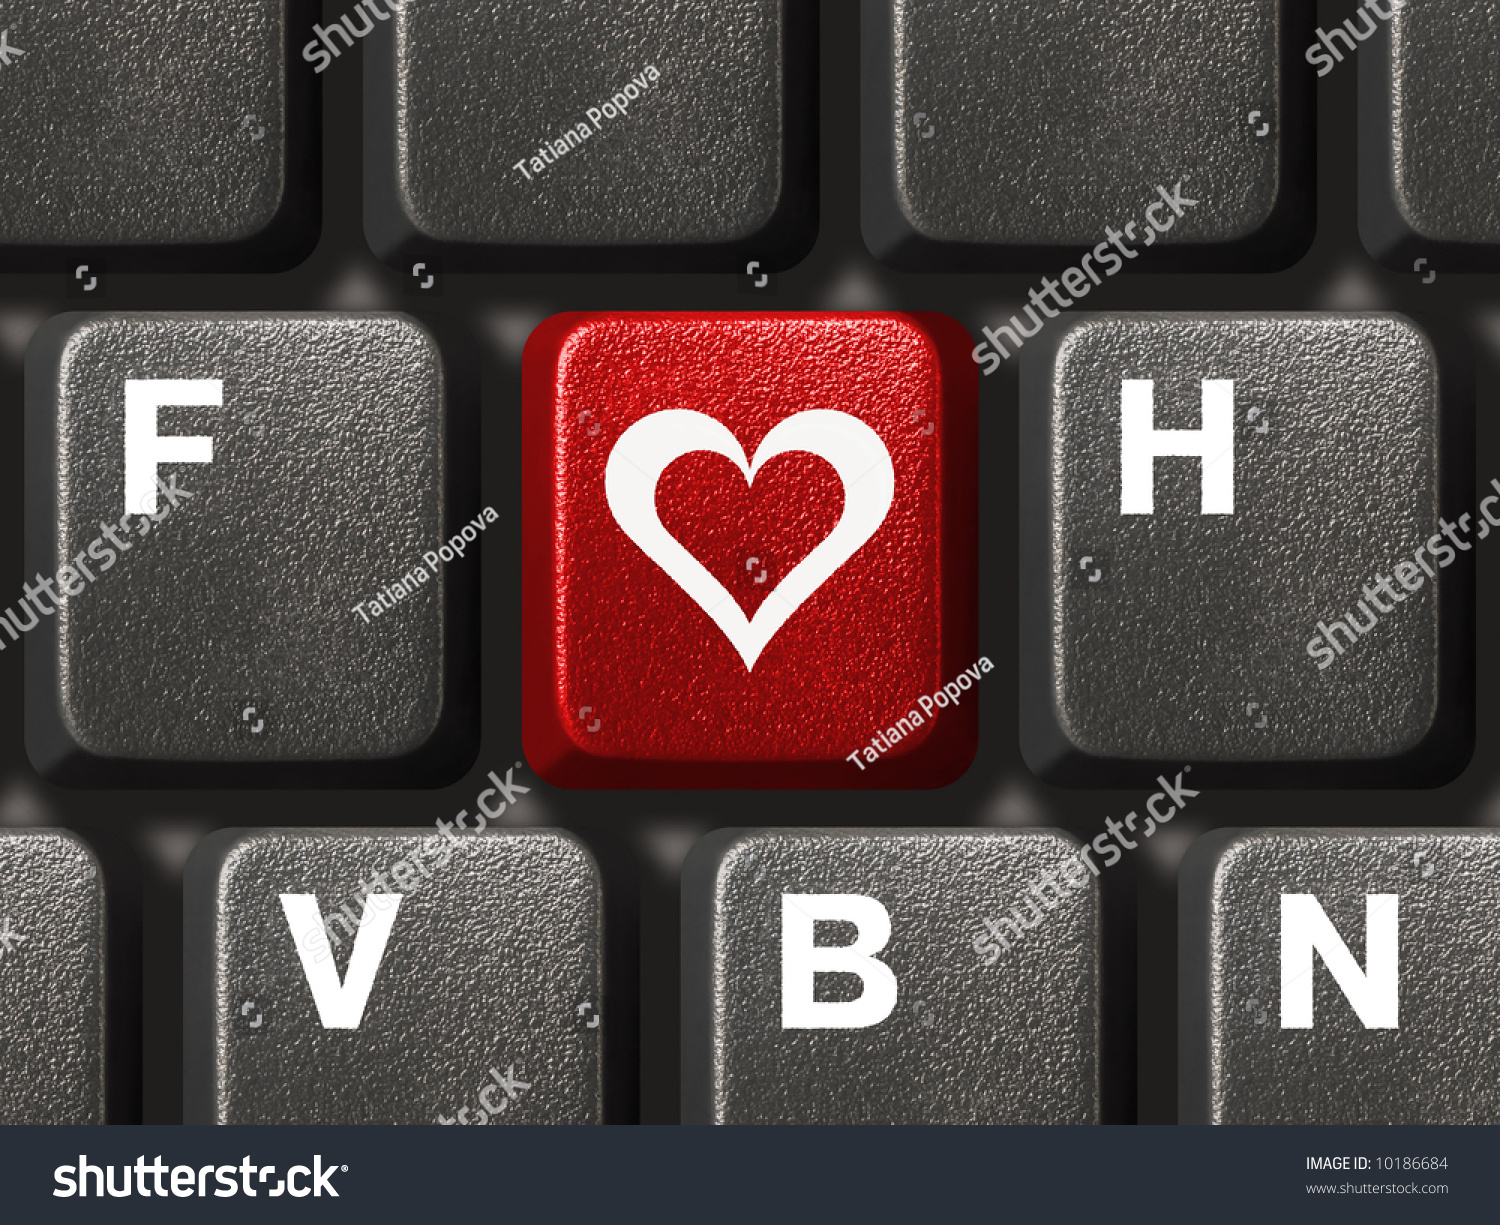 how to get a love heart on the keyboard